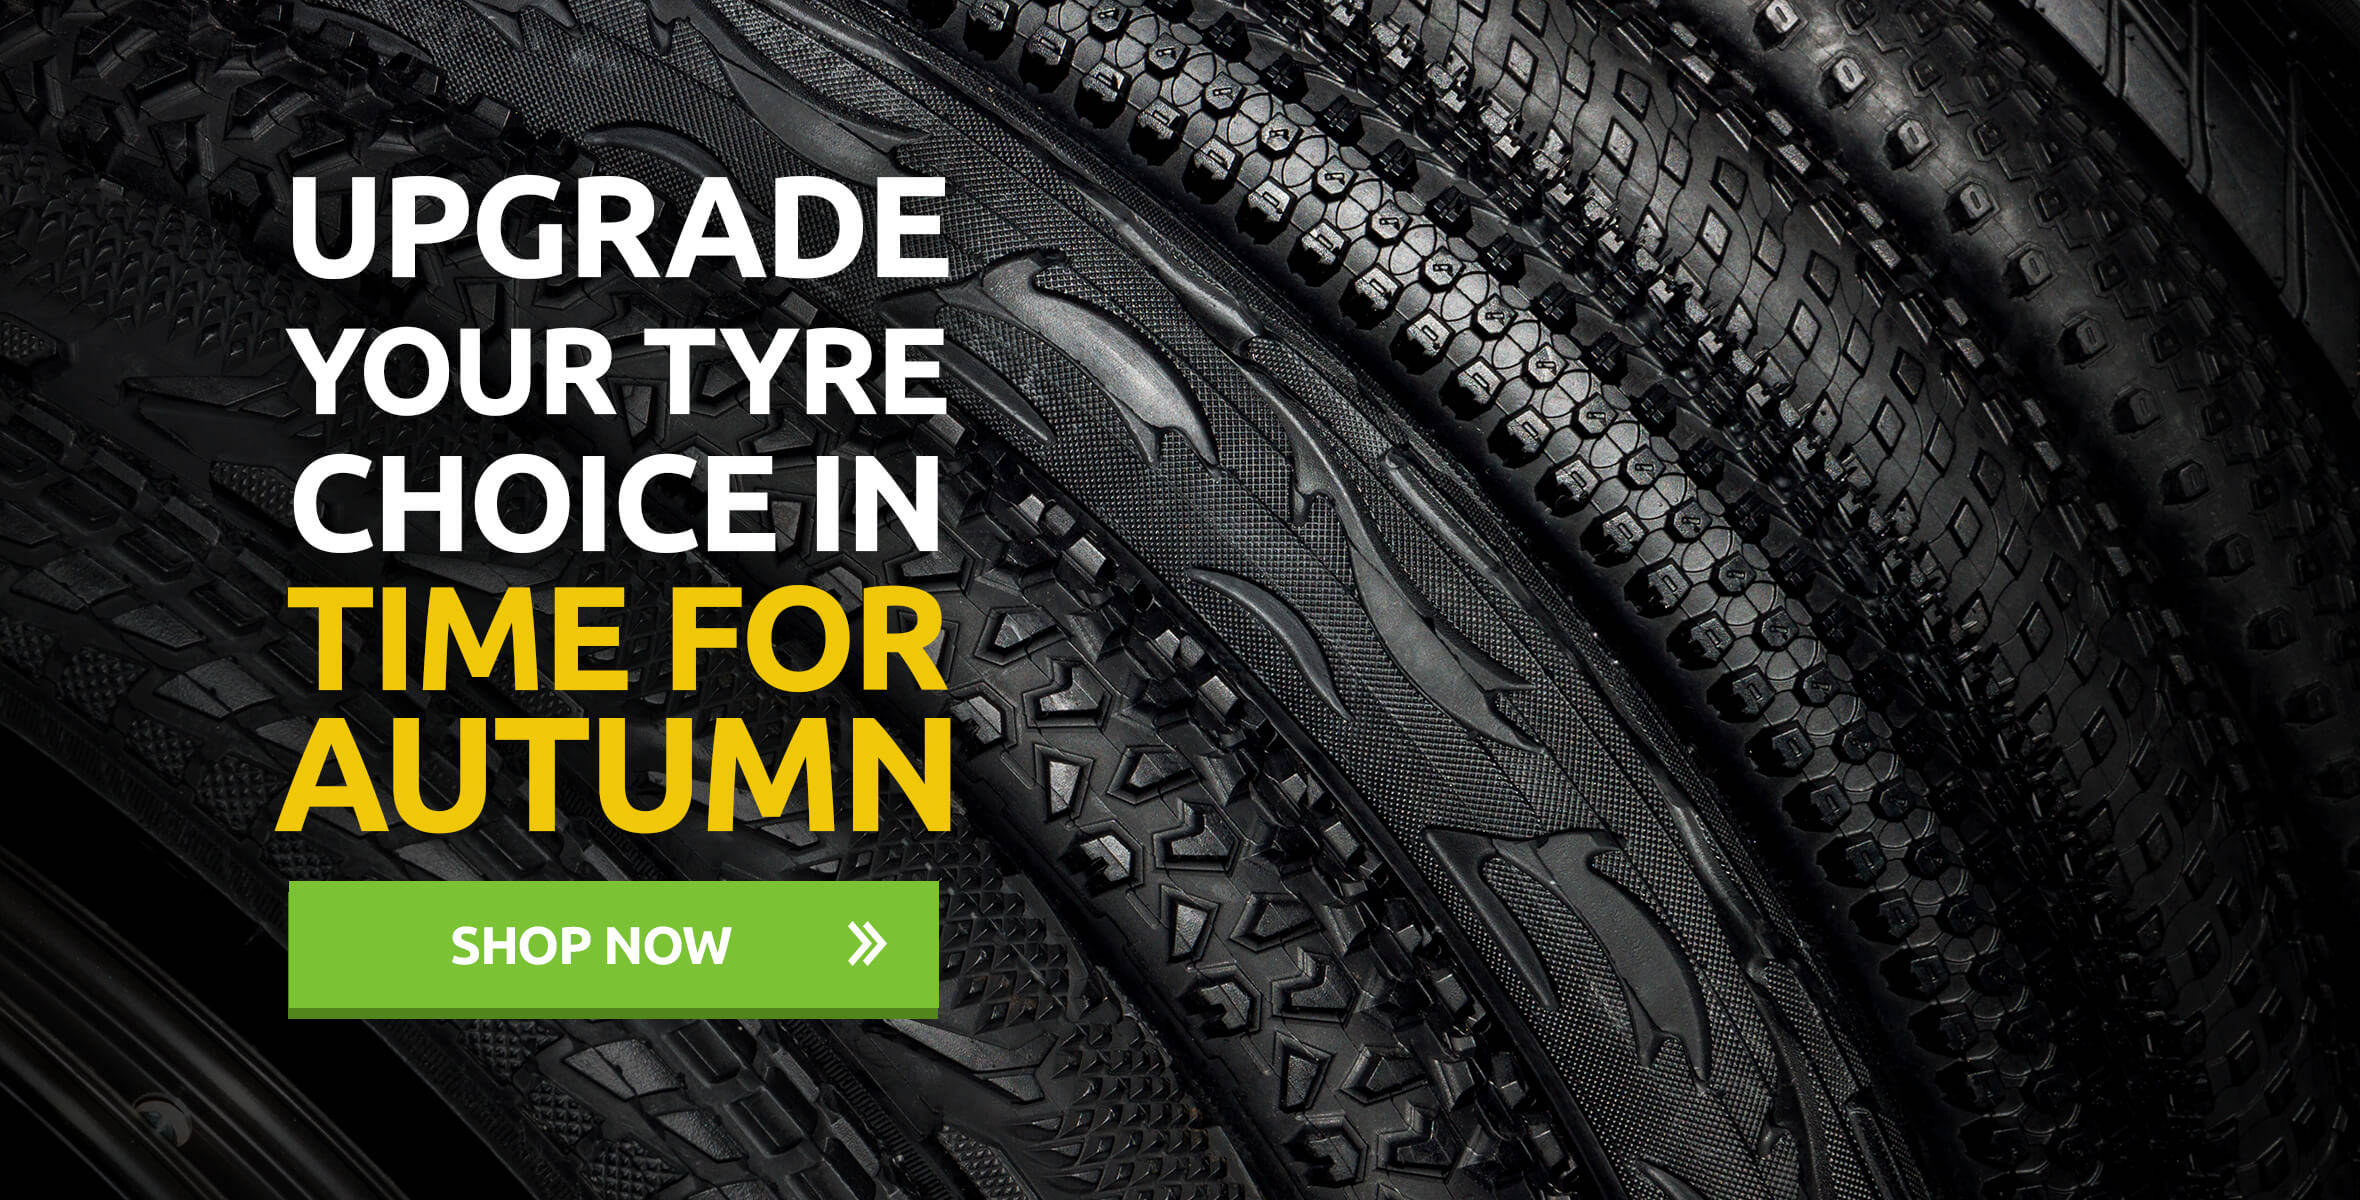 Upgrade Your Tyre Choice In Time For Autumn